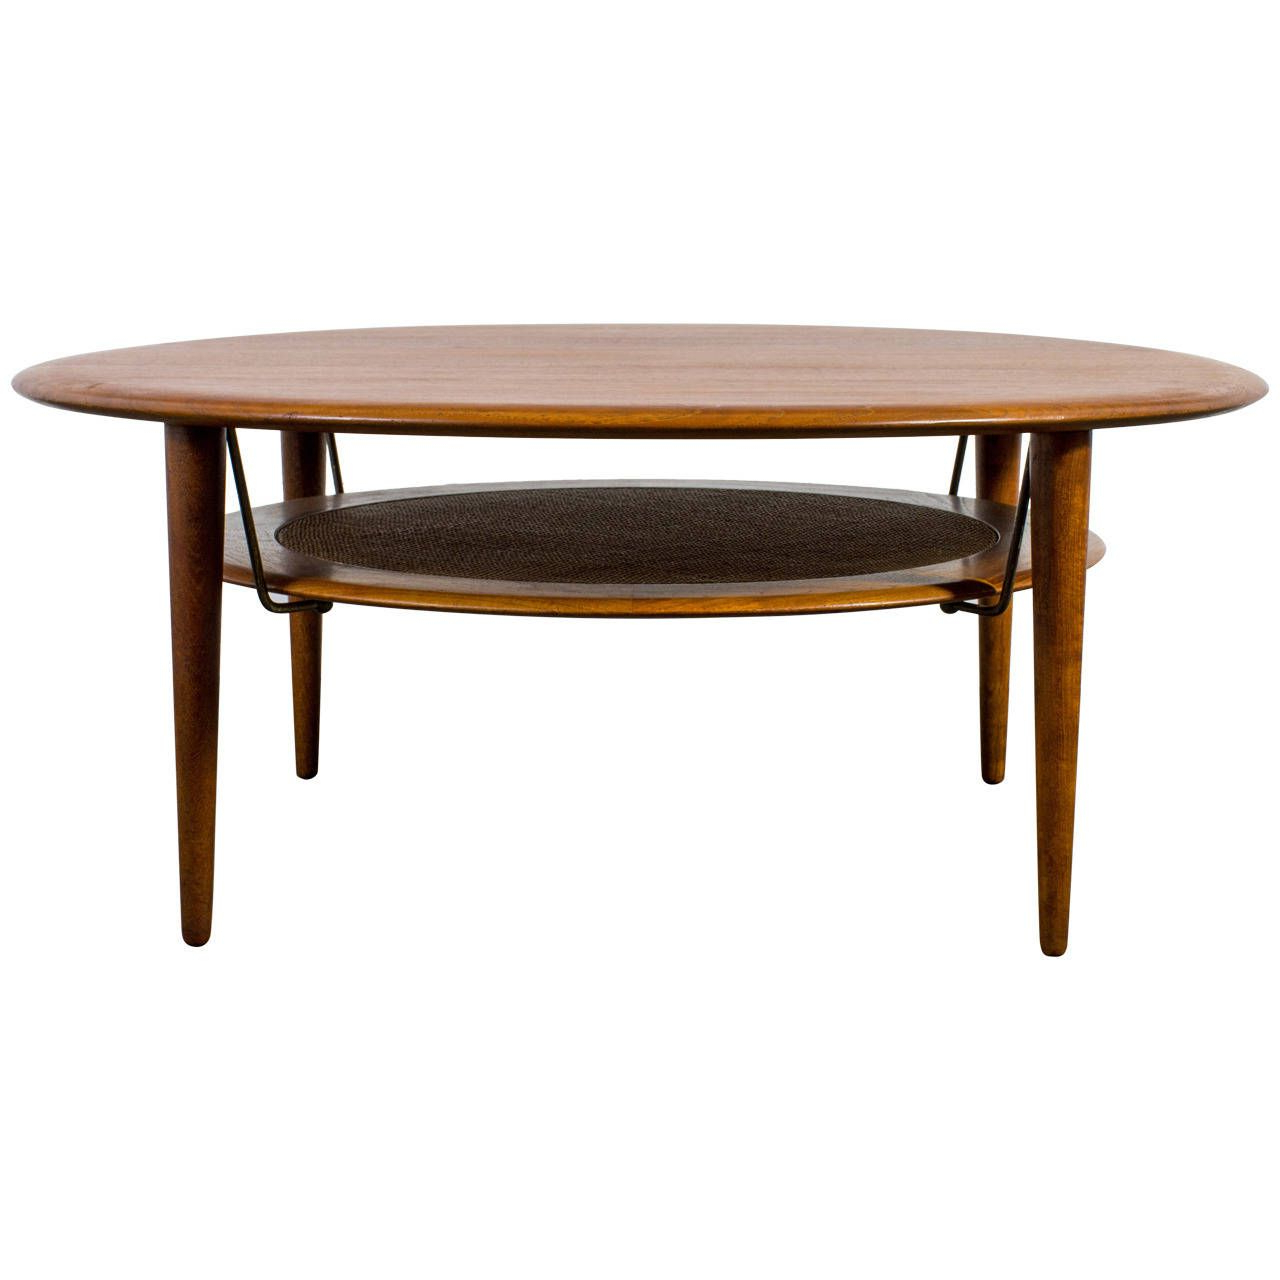 Round Teak Coffee Tables With Regard To Current Danish Modern Round Teak Coffee Tablepeter Hvidt And Orla (View 18 of 20)